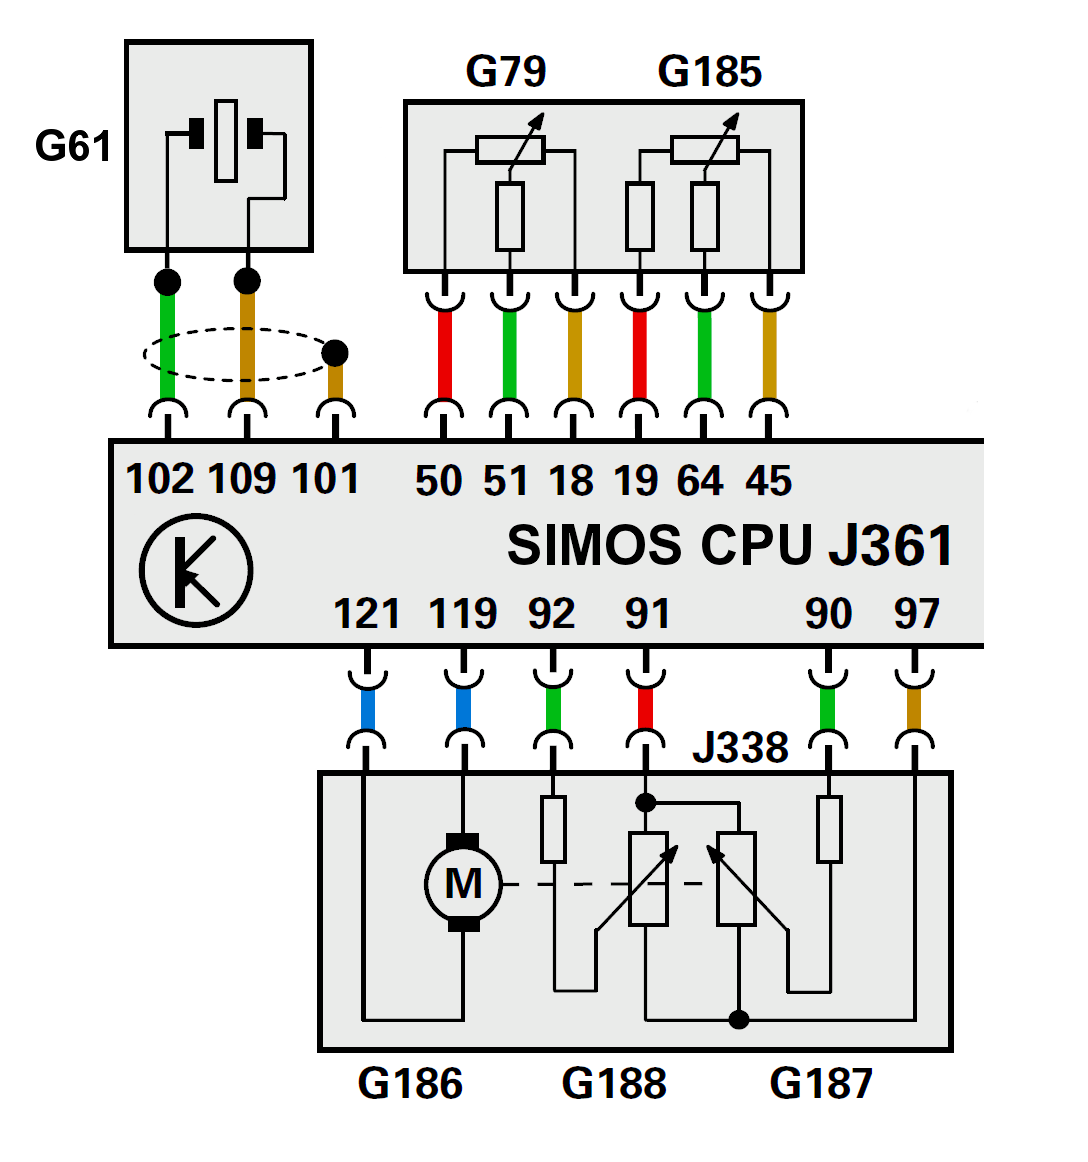 siemens simos ecu j361 with pin connections [ 1088 x 1162 Pixel ]